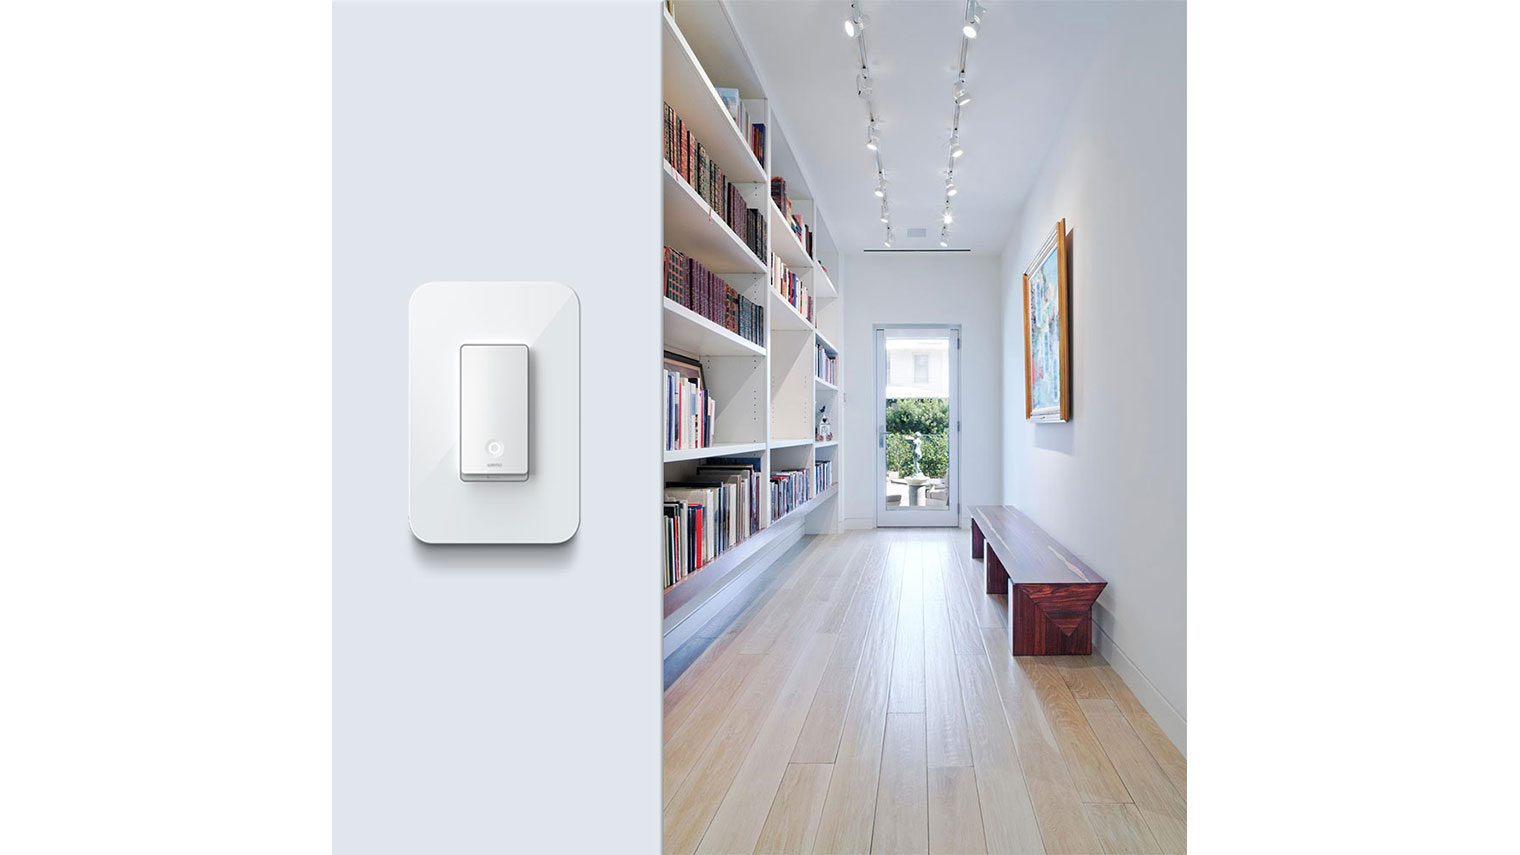 Wemo Light Switch 3-Way at the end of a hallway